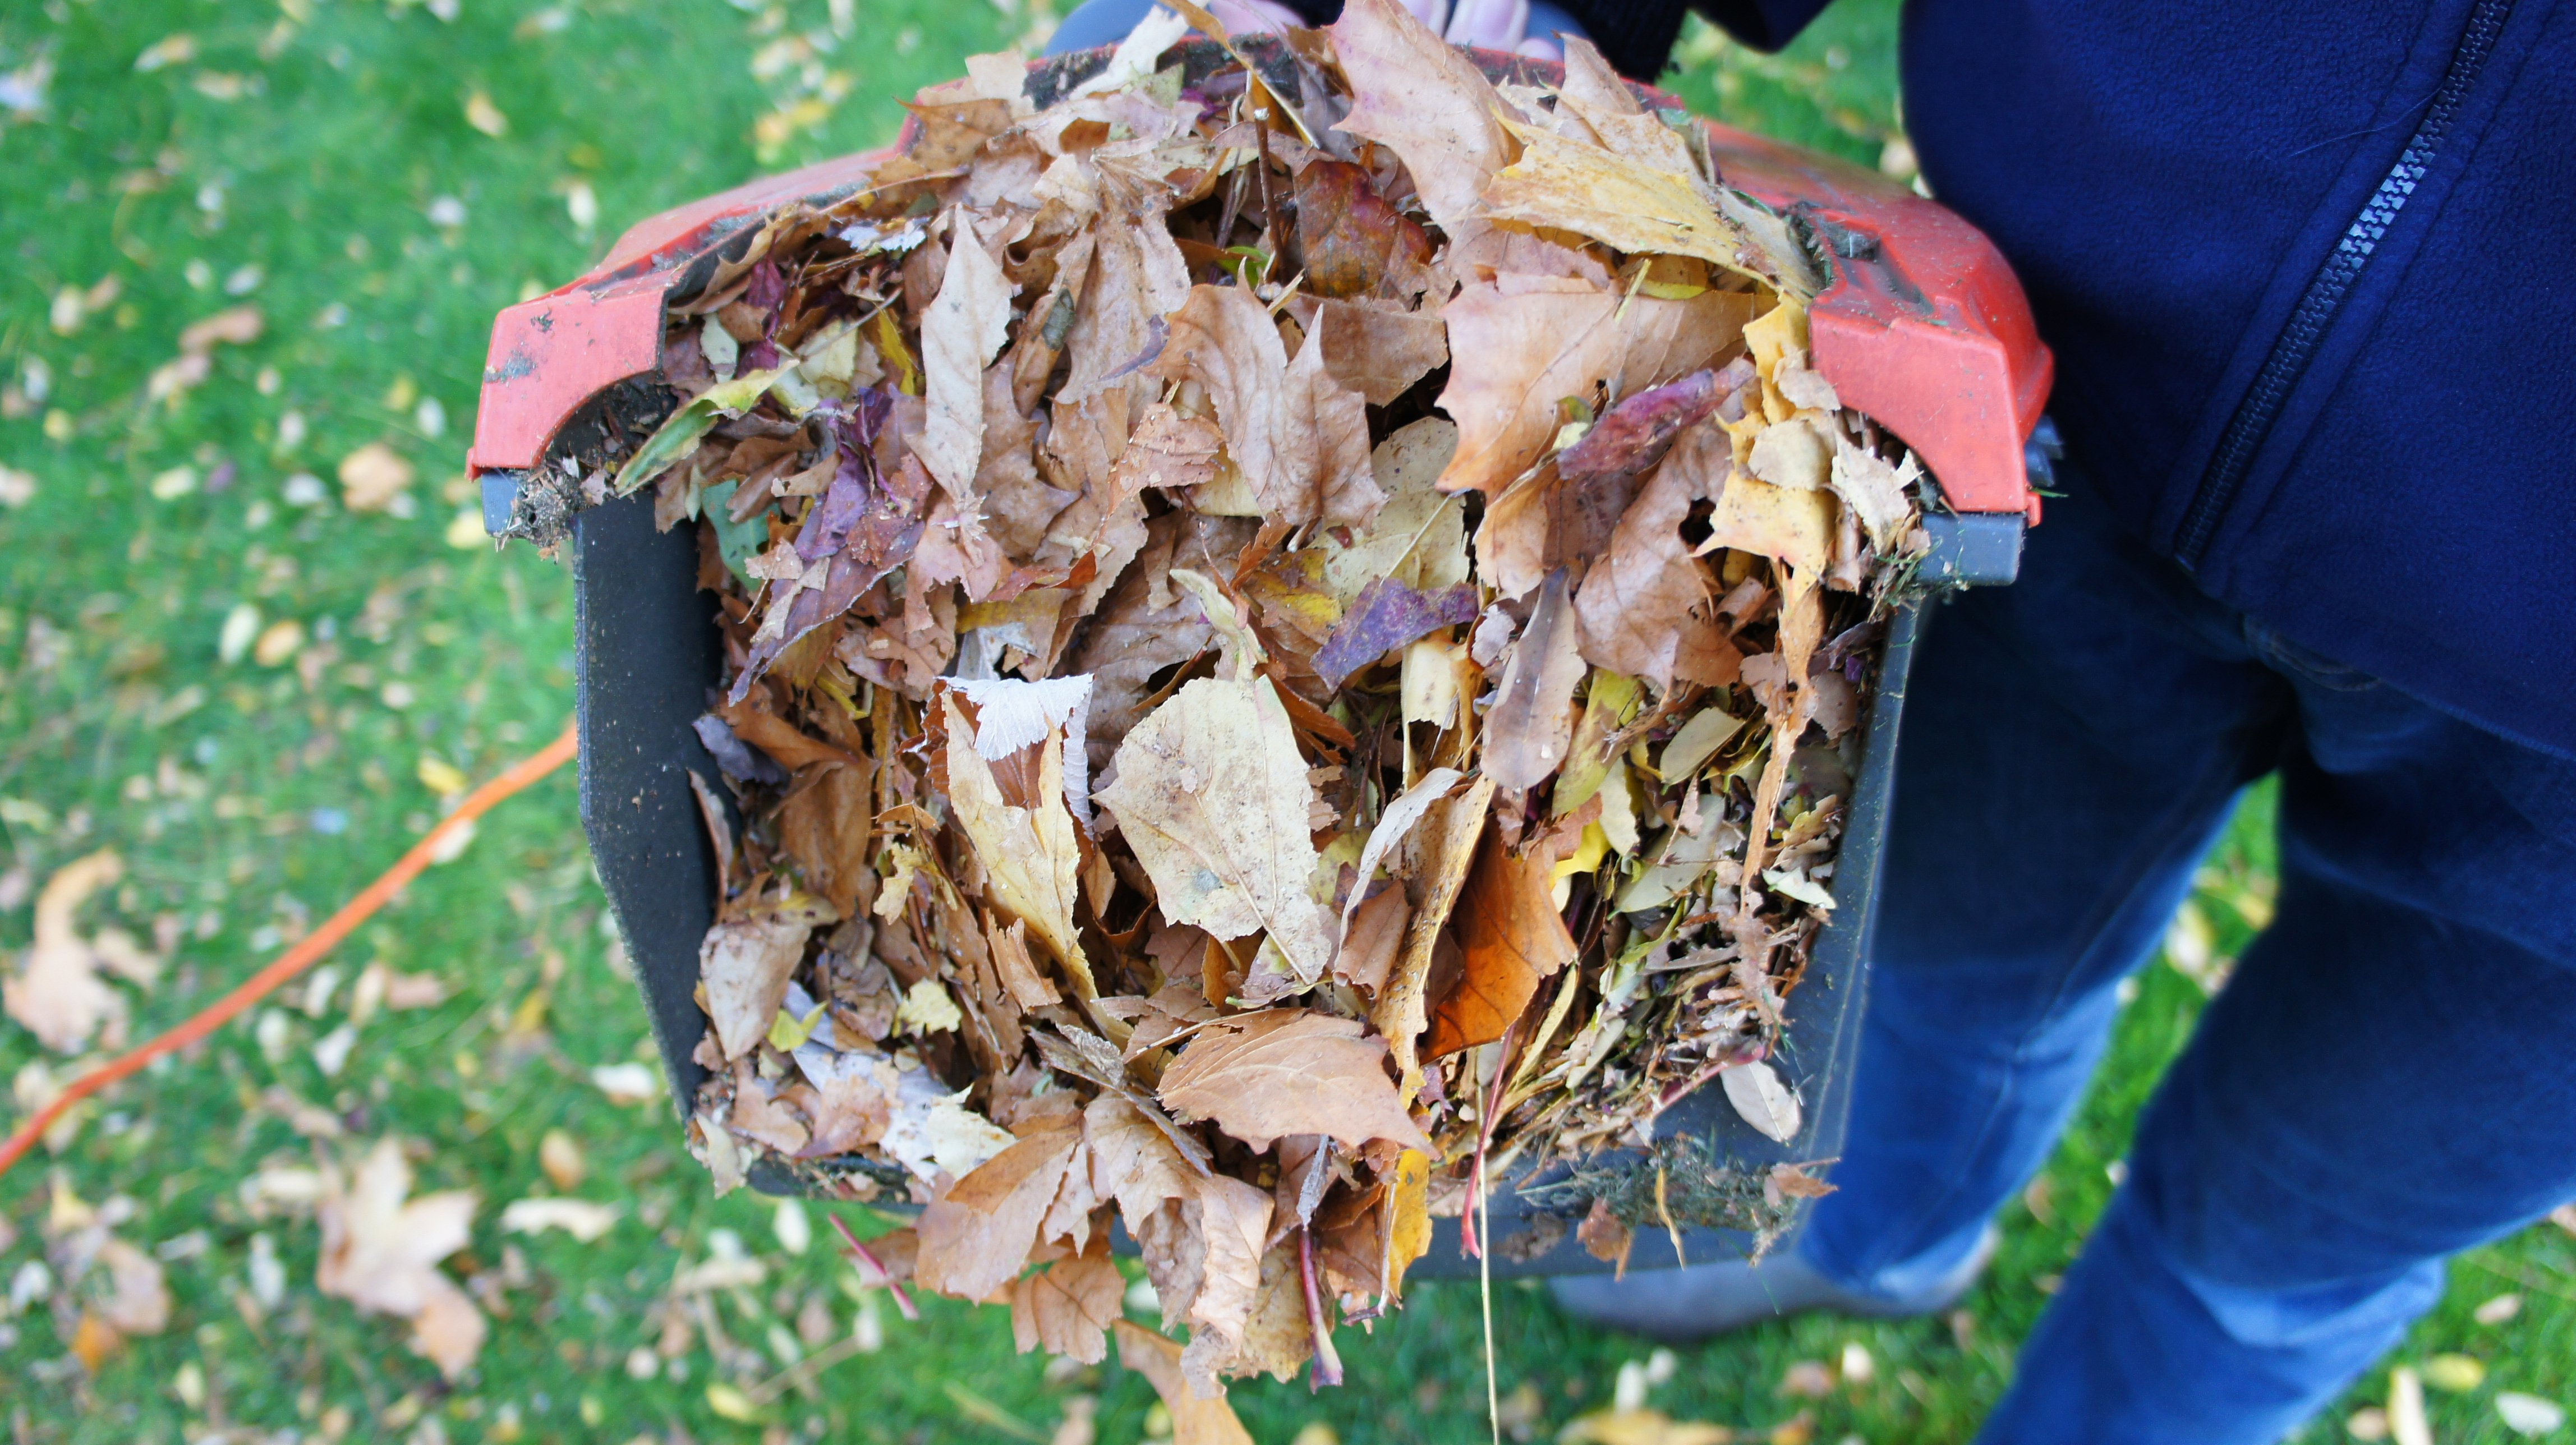 Leaf mould shredded leaves